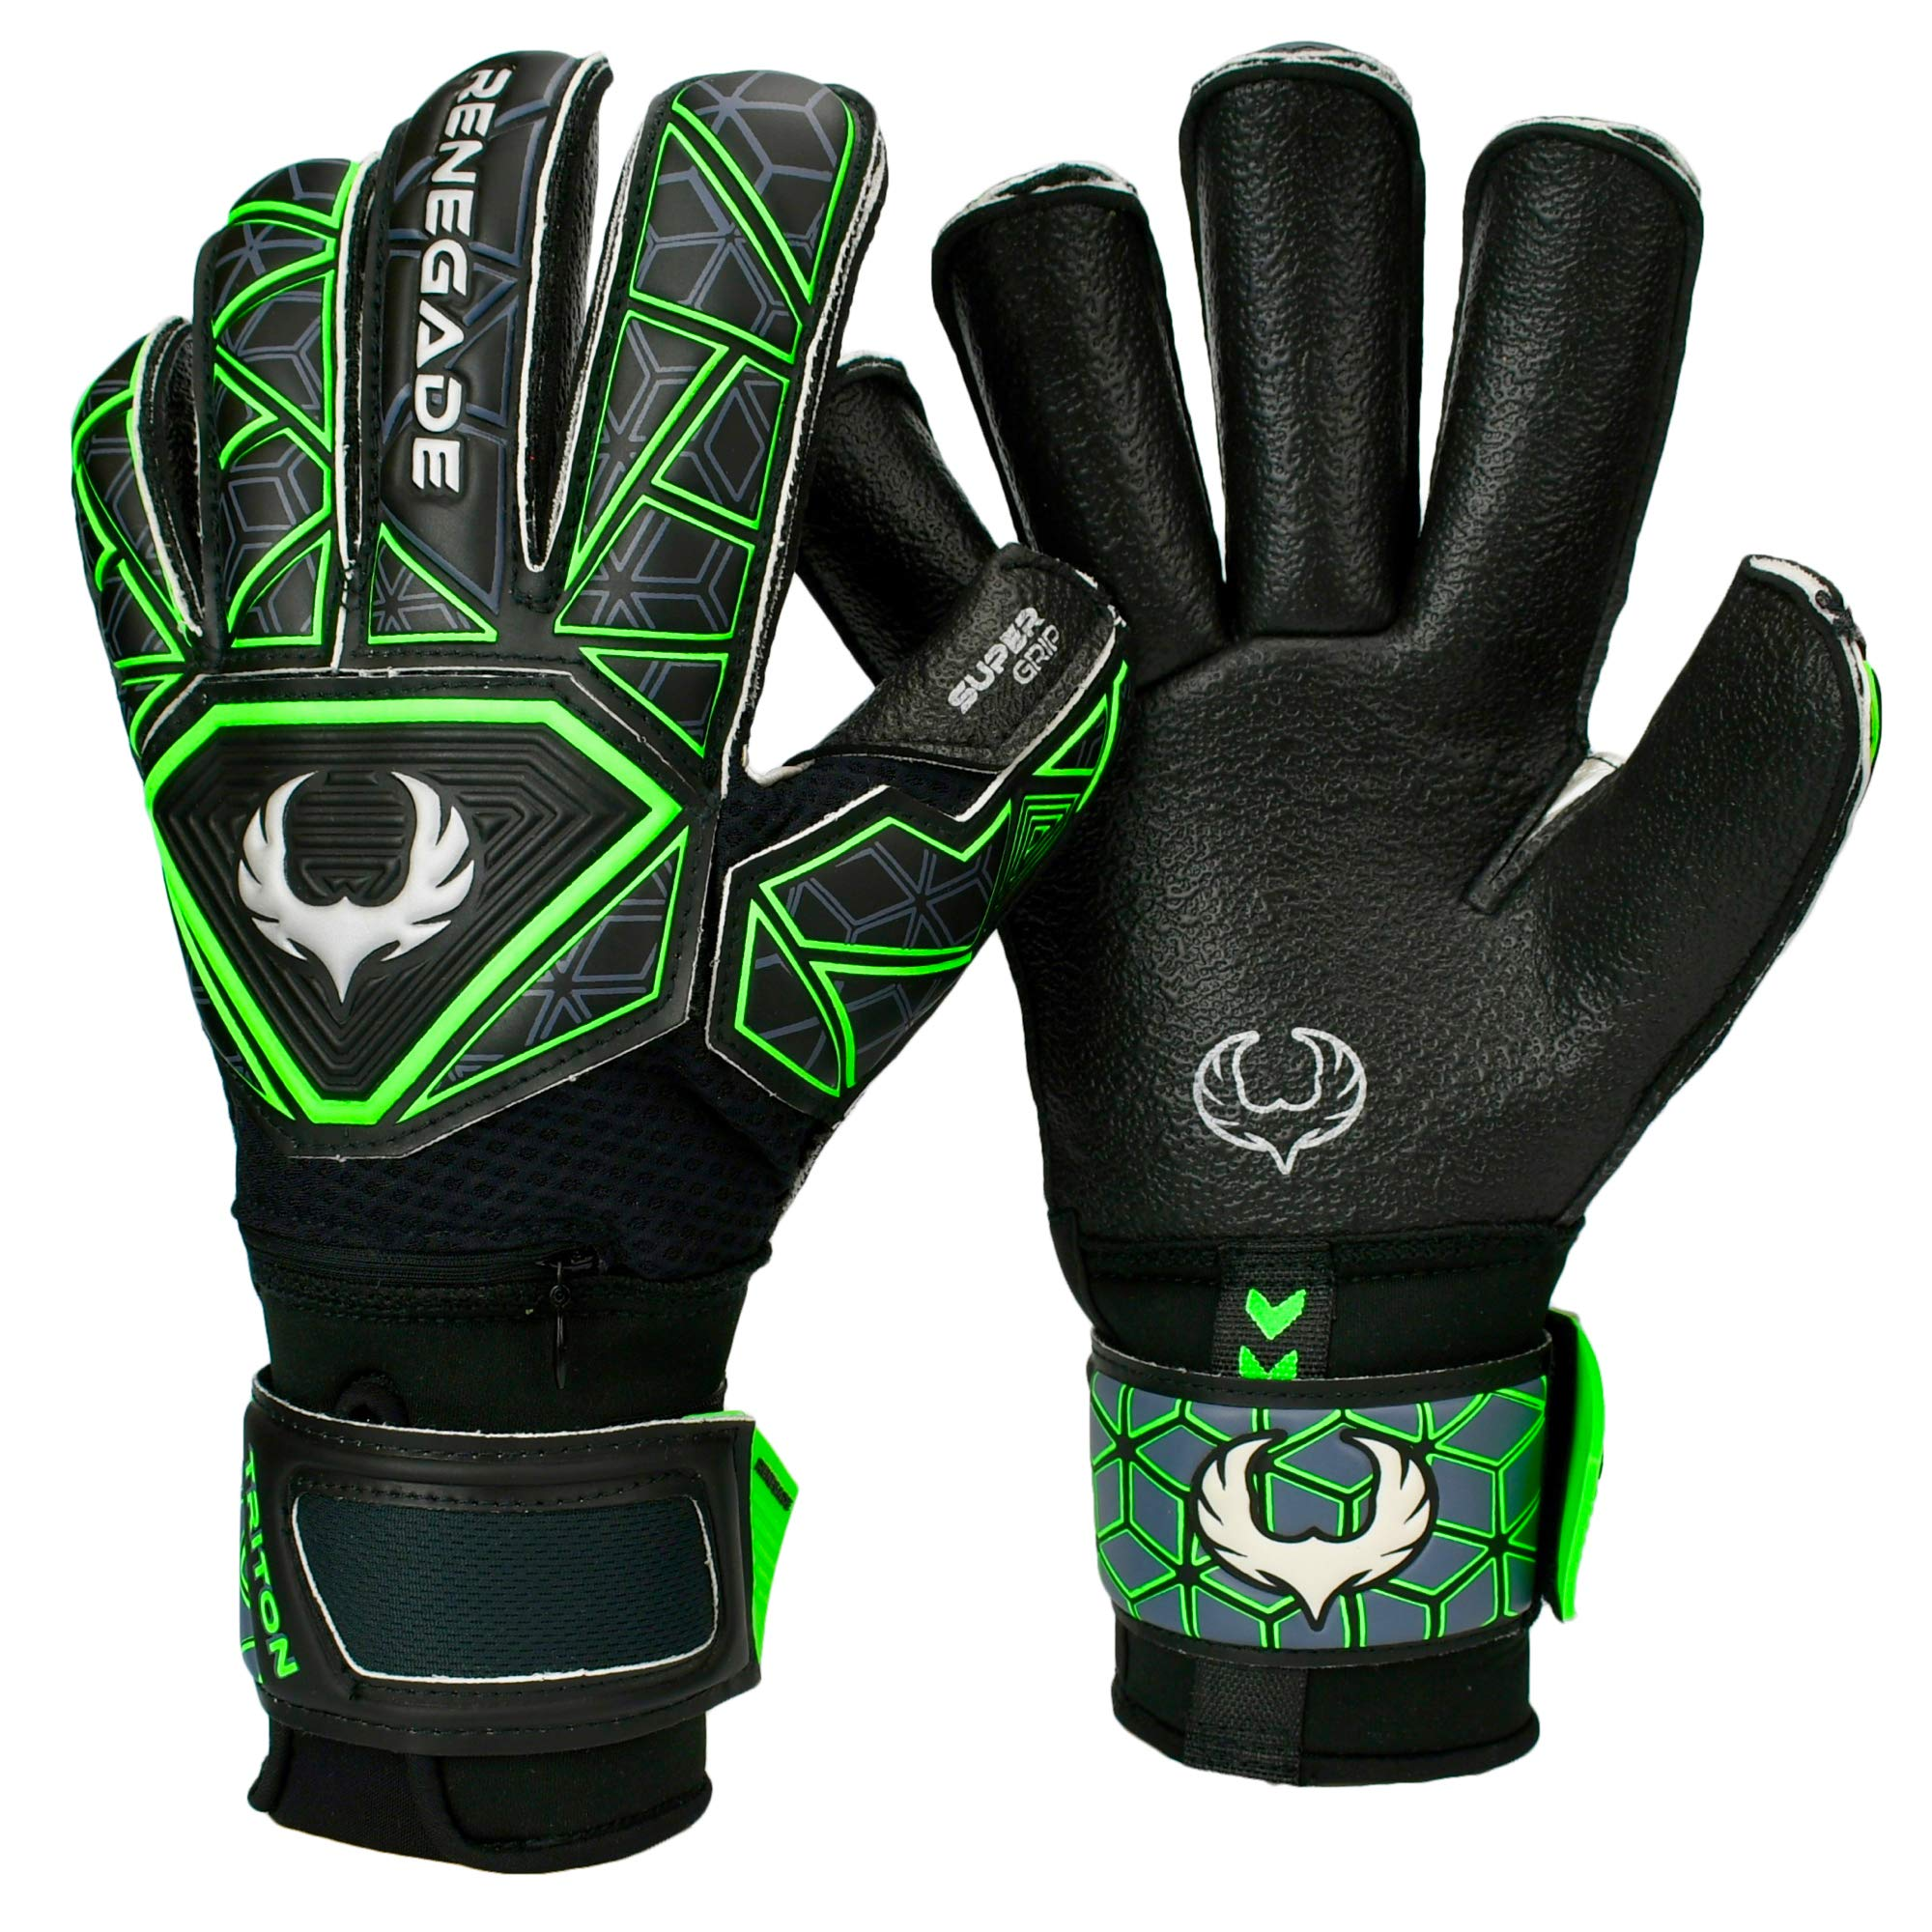 Renegade GK Triton Raider Level 2 Roll Cut Goalkeeper Gloves Youth with Fingersaves - Goalkeeper Gloves Size 5 - Soccer Goalie Gloves Kids - Goalkeeper Gloves for Kids - Black & Green